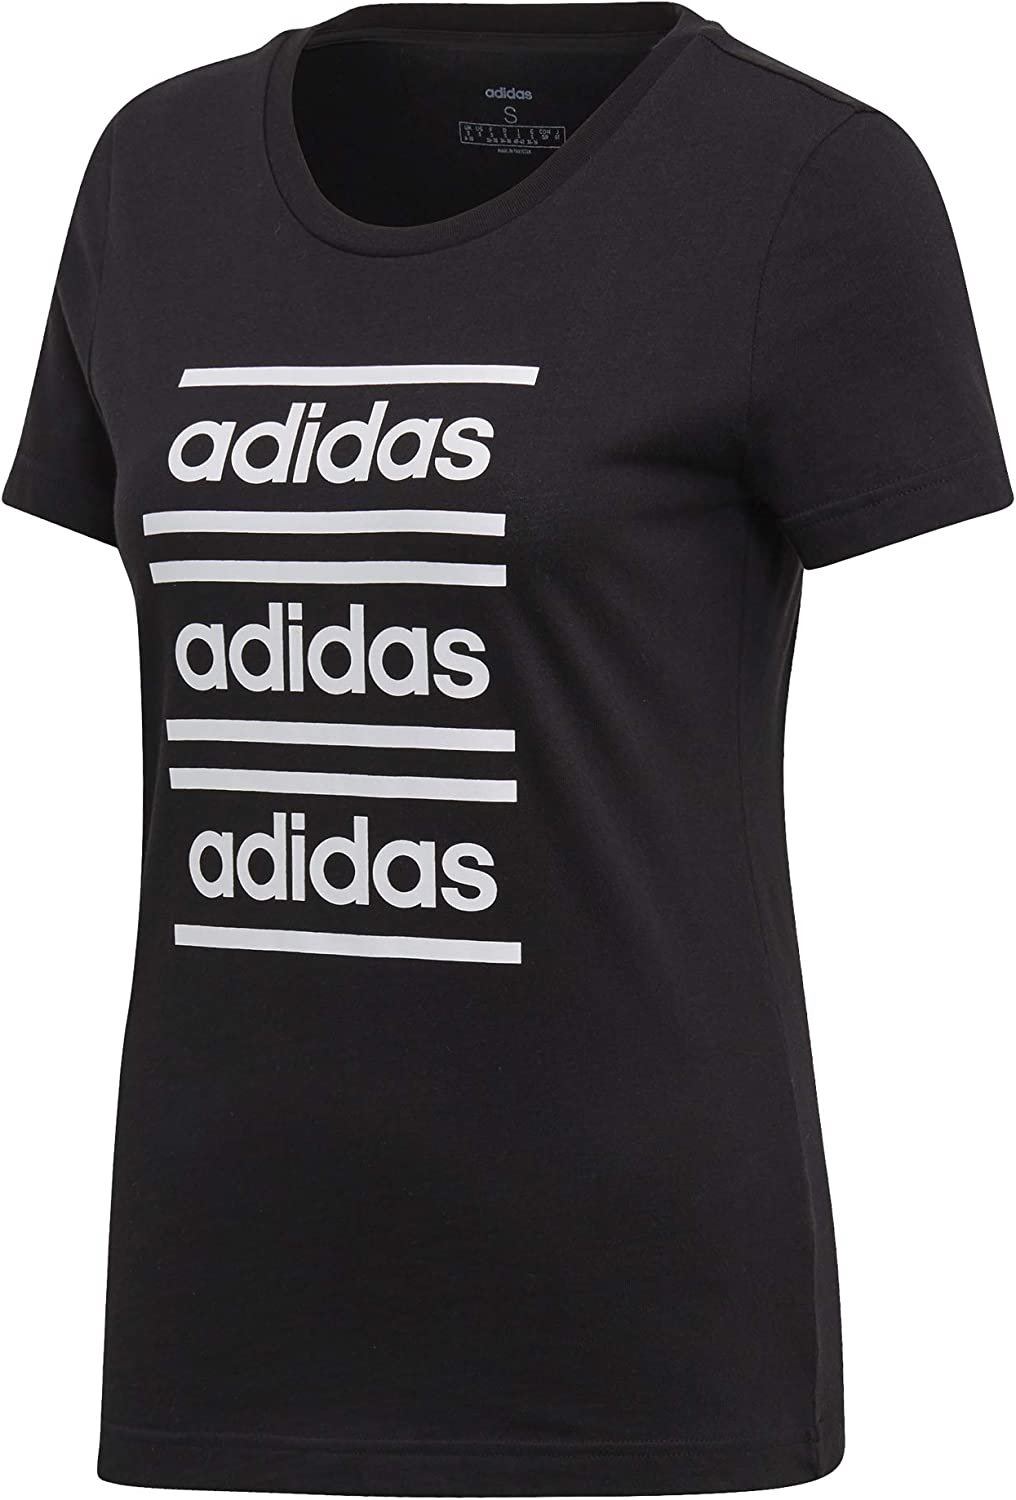 adidas Clelebrate The 90s T-Shirt W - Camiseta Mujer